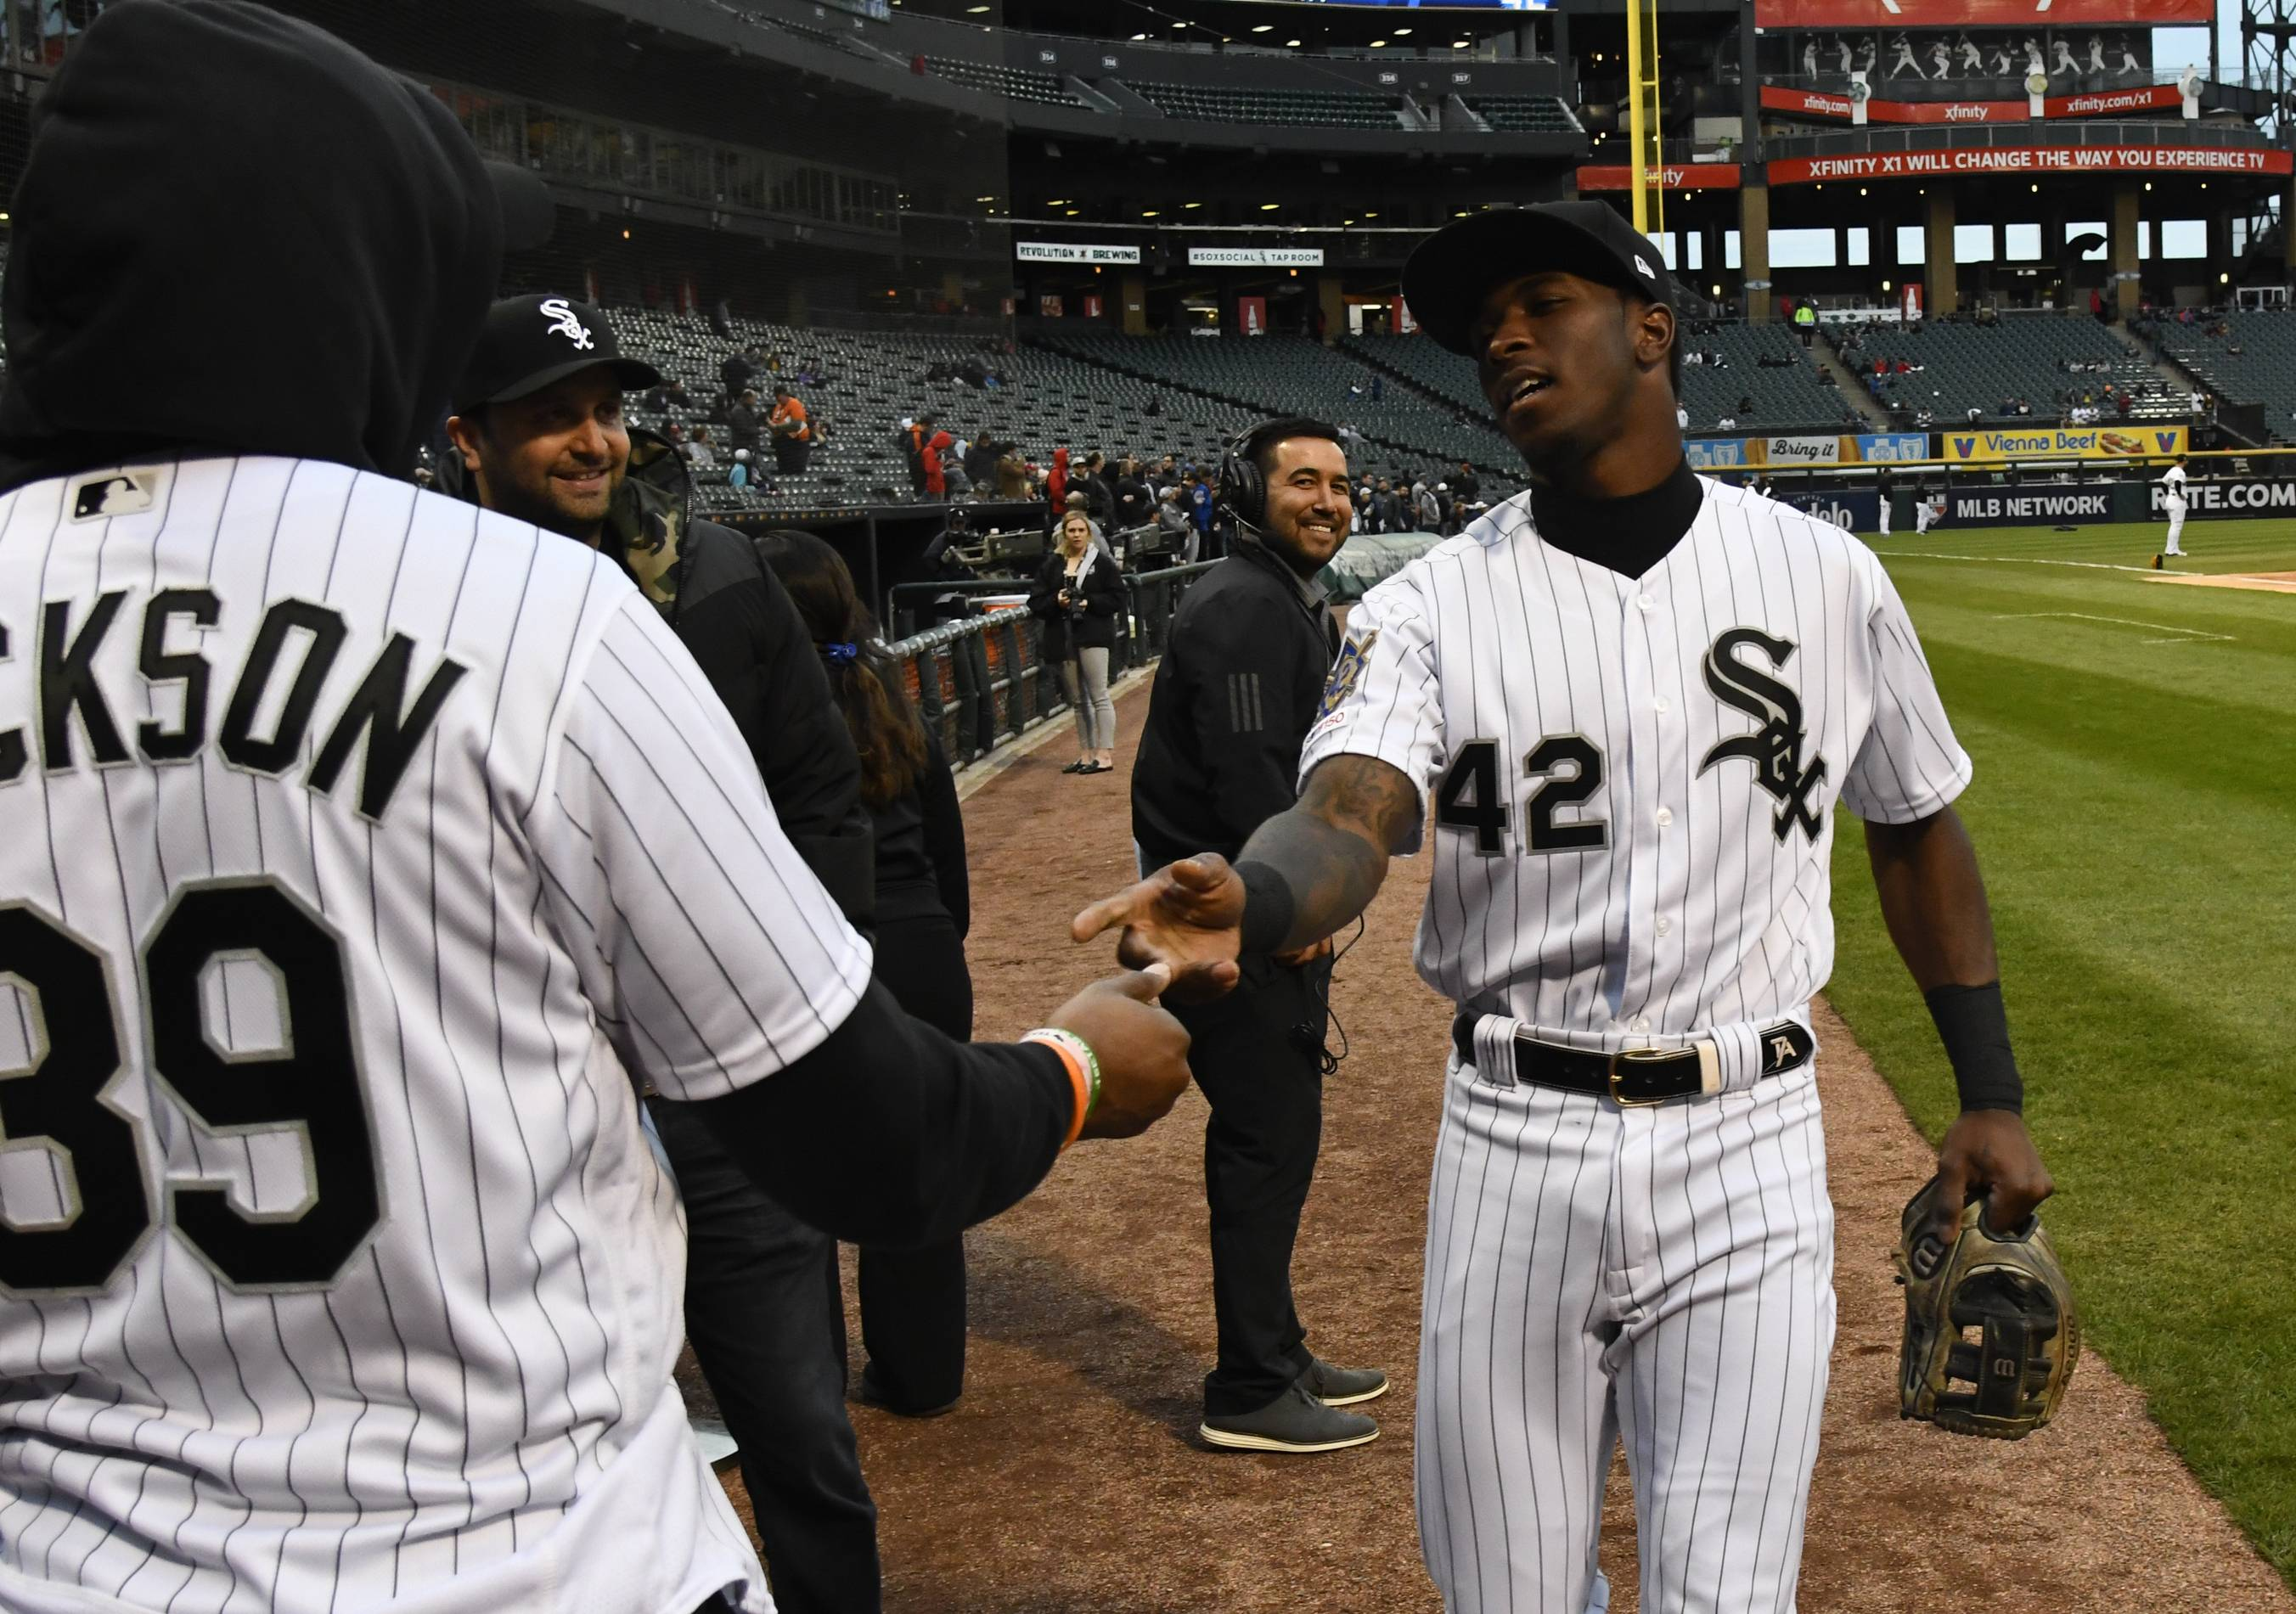 Chicago Bears player Eddie Jackson, left, and Chicago White Sox shortstop Tim Anderson, right, shake hands before Jackson threw out a ceremonial first pitch before a baseball game between the White Sox and the Kansas City Royals, Monday, April 15, 2019, in Chicago. No. 42 was worn to honor Jackie Robinson.